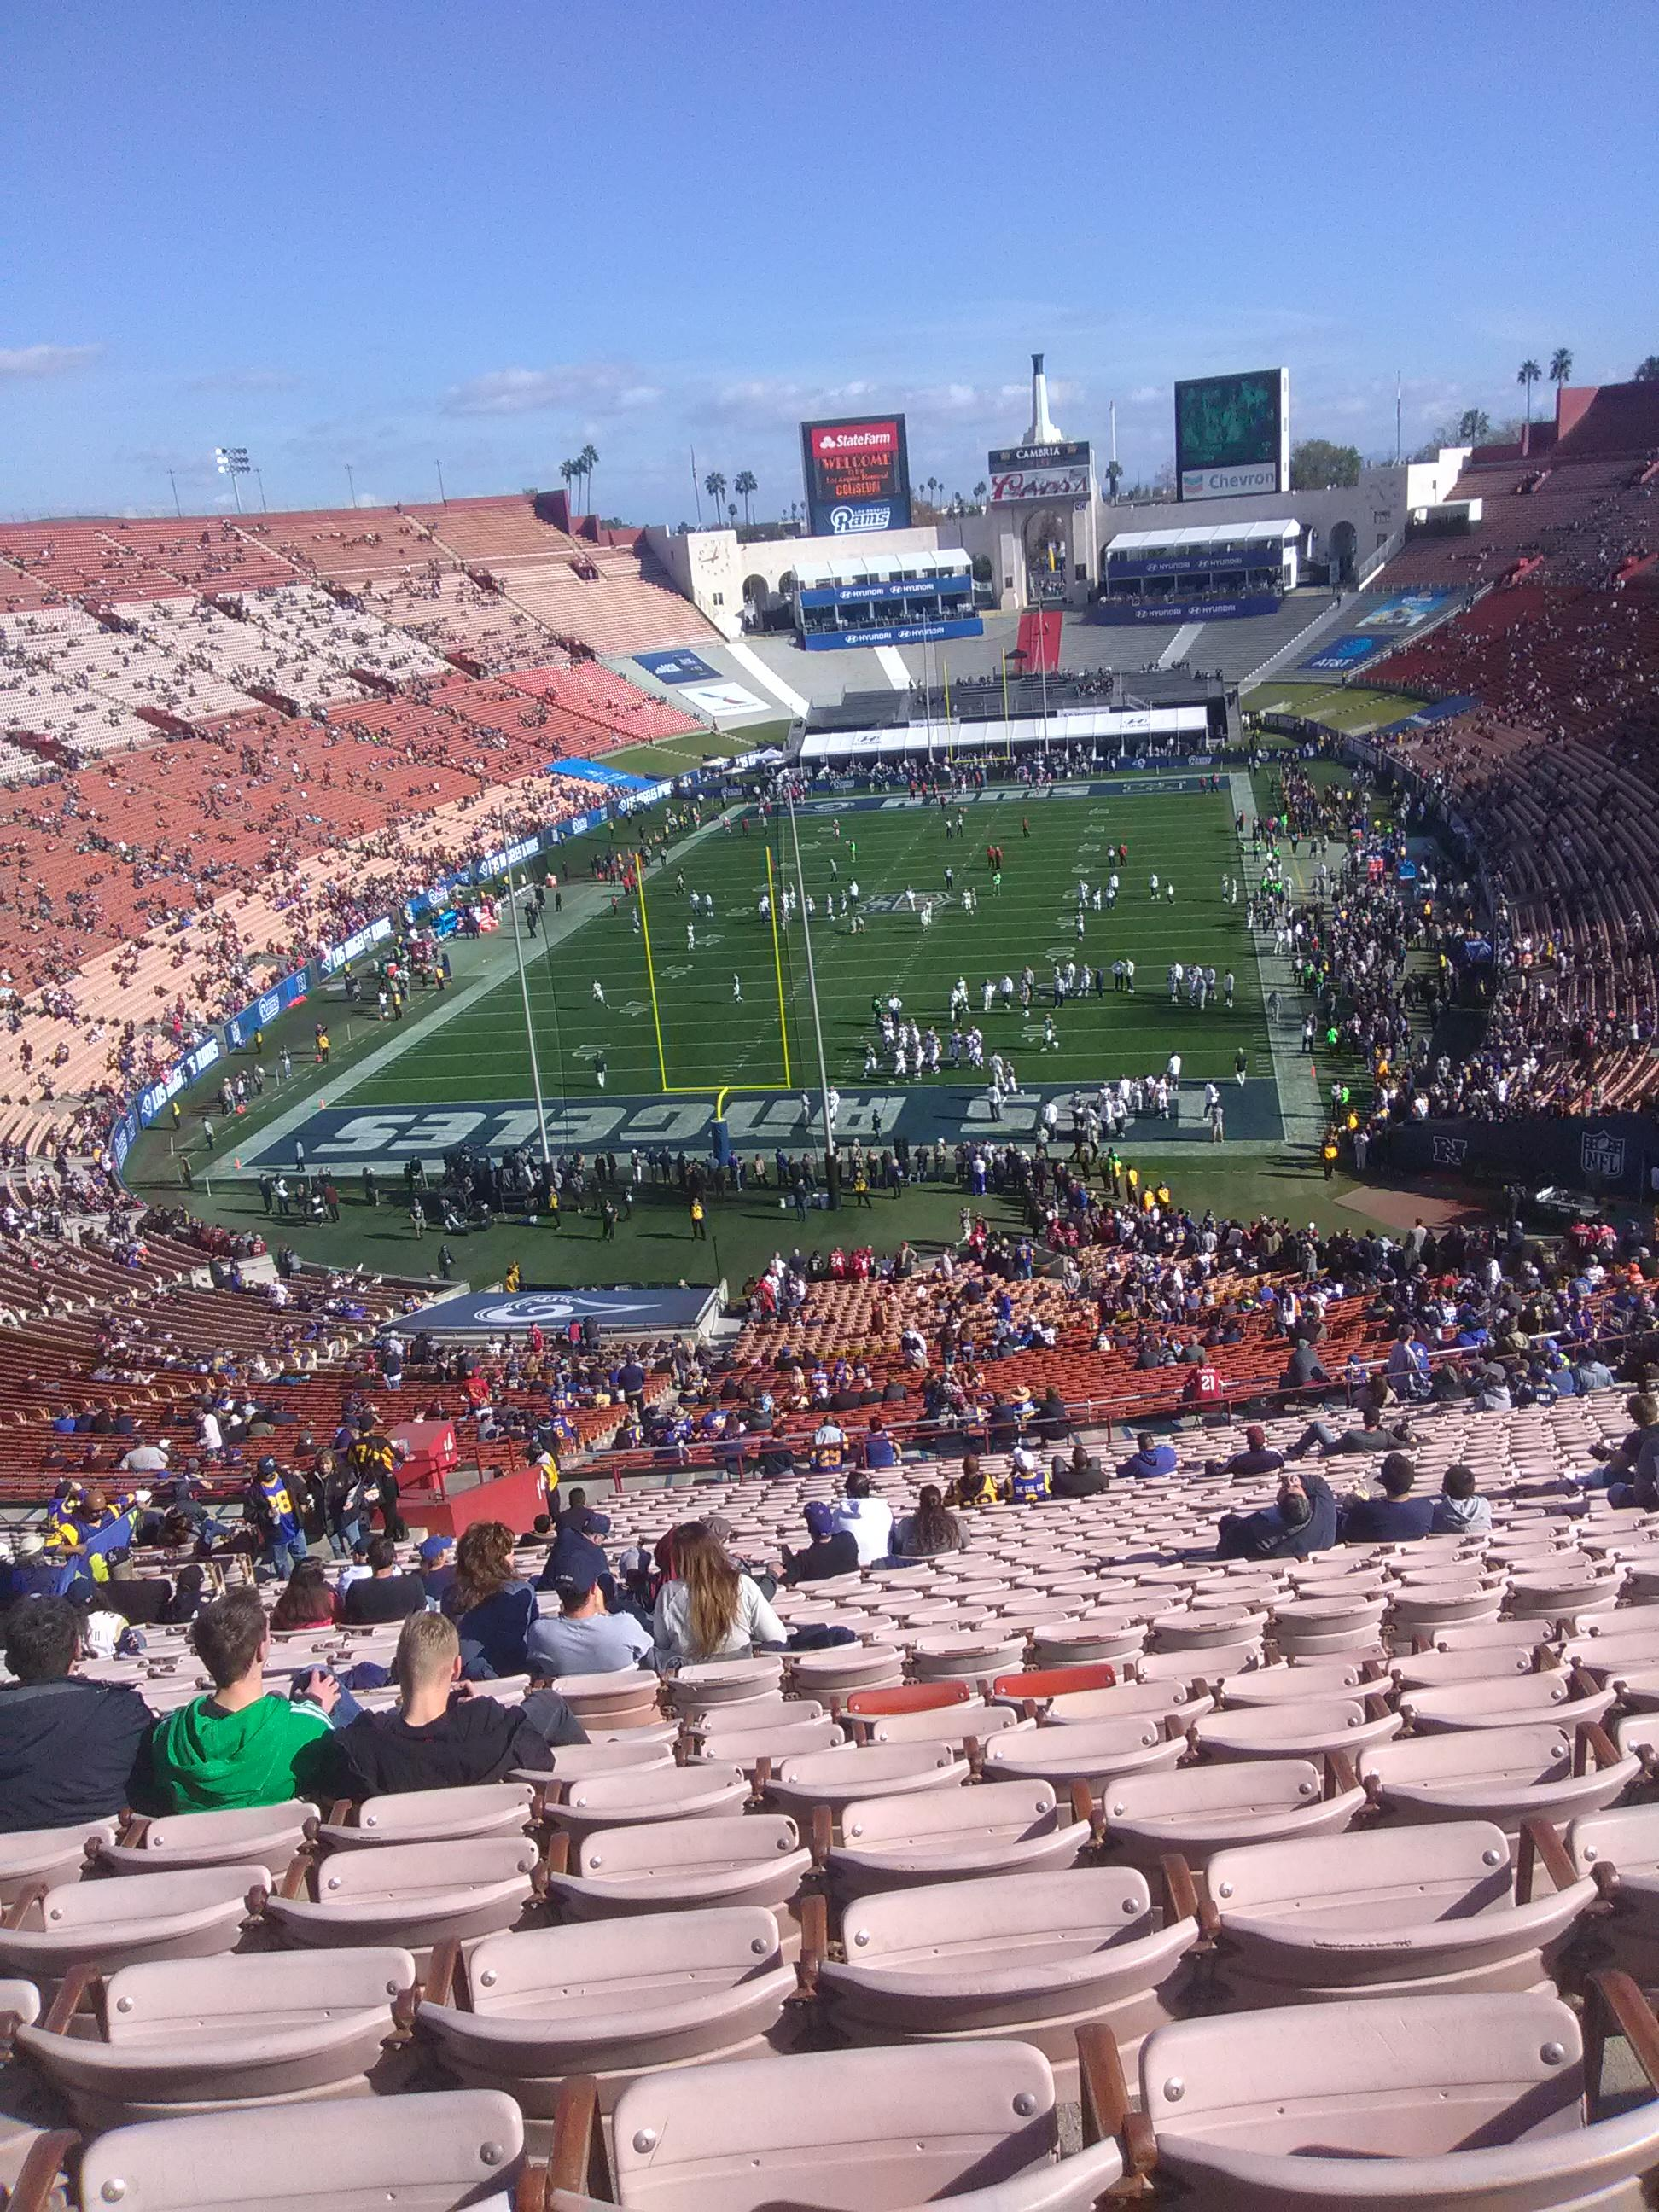 Los Angeles Memorial Coliseum Section 313 Row 8 Seat 39